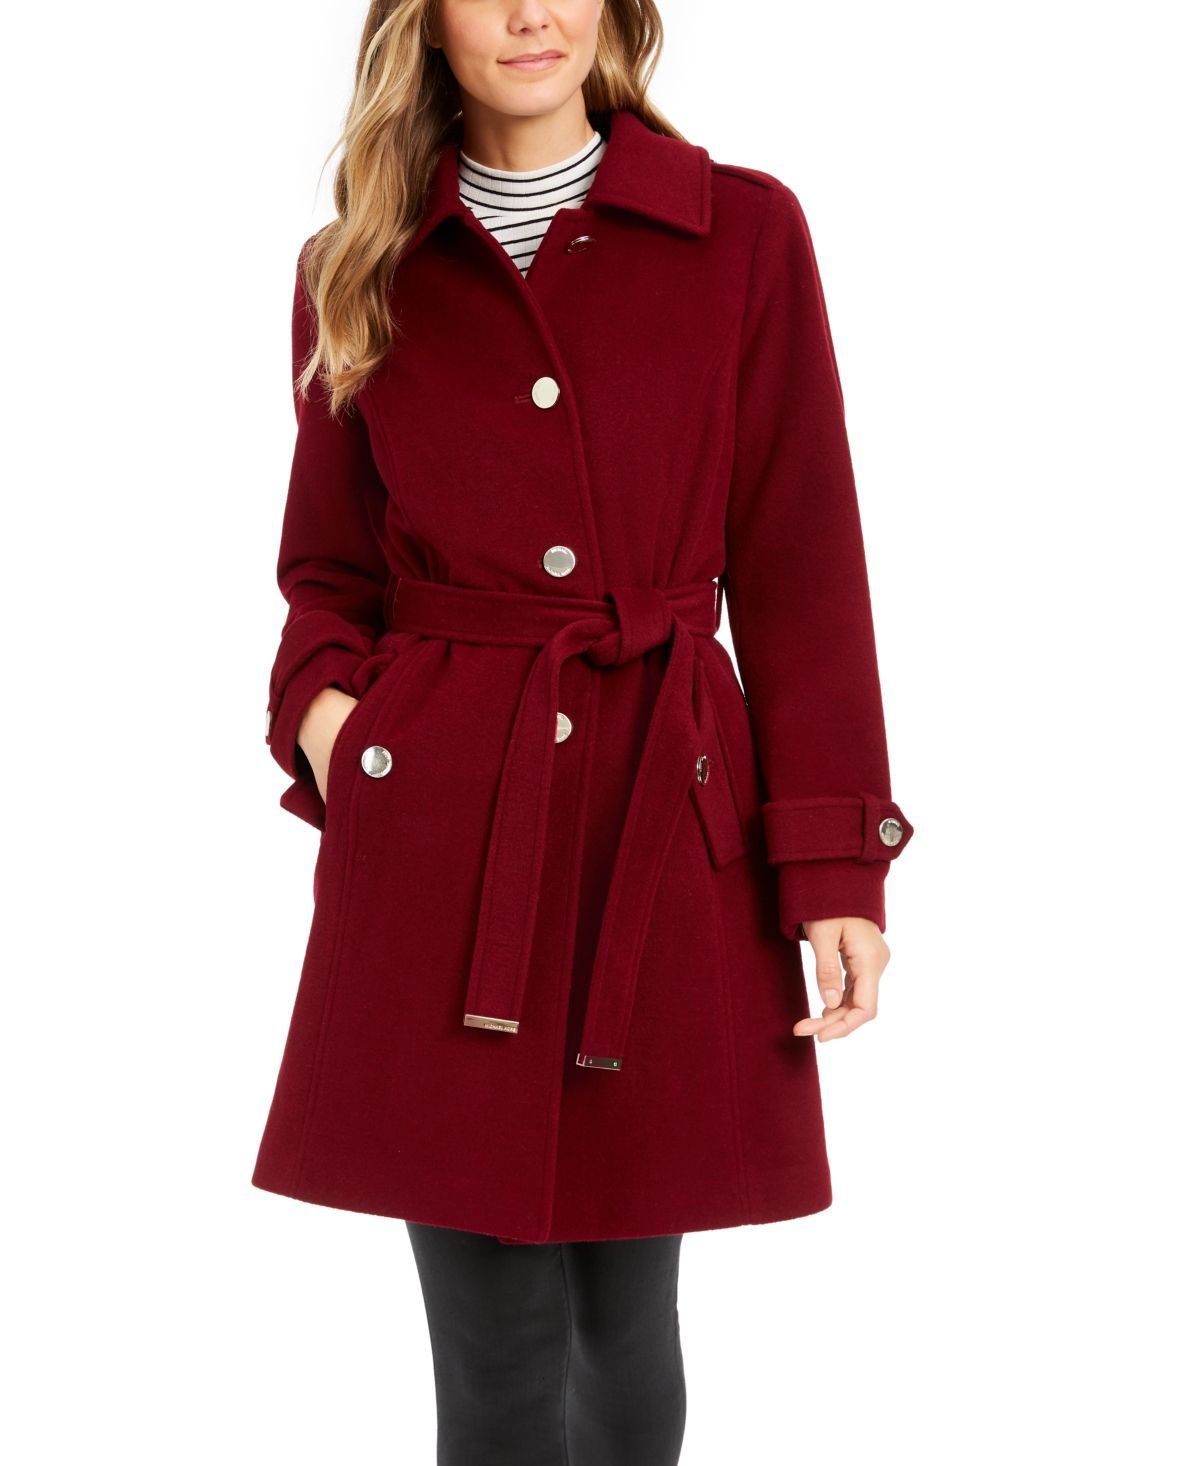 Pin By Valentina Tims On Coats Coat Clearance Clothes Coats For Women [ 1466 x 1200 Pixel ]